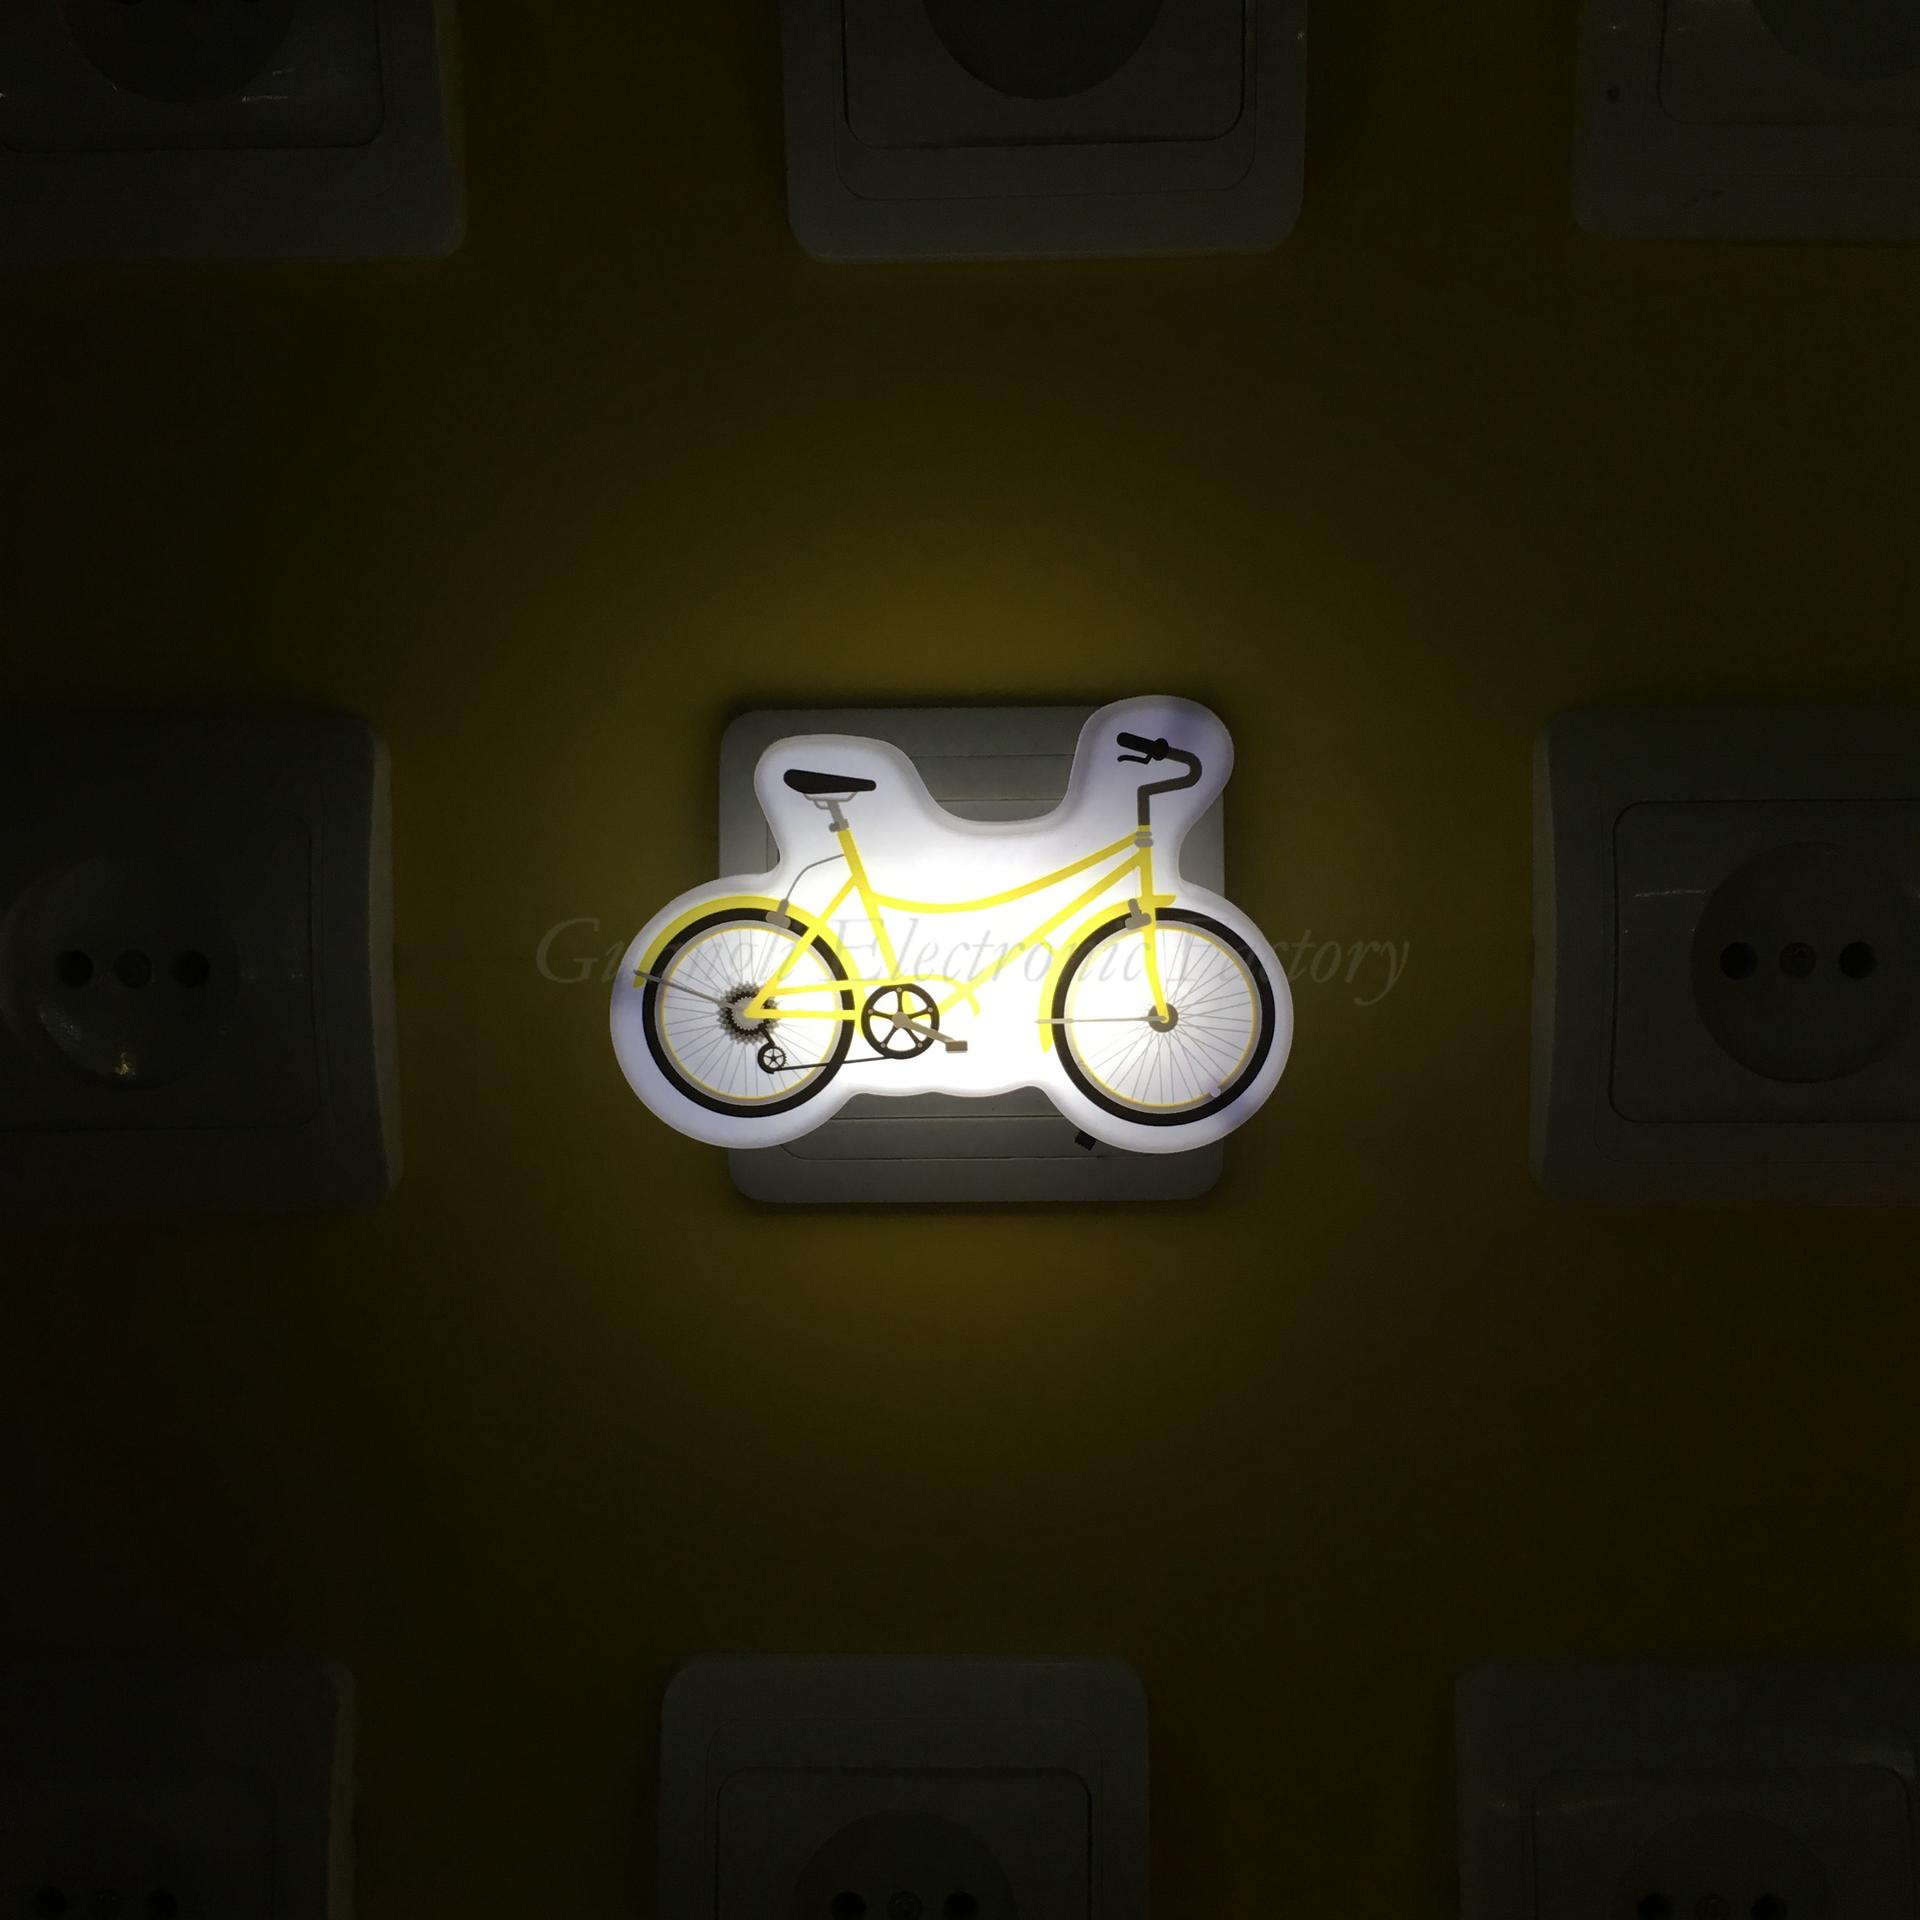 W095 Cartoon bicycle 4 SMD mini switch plug in room usage withnight light wall decoration child gift